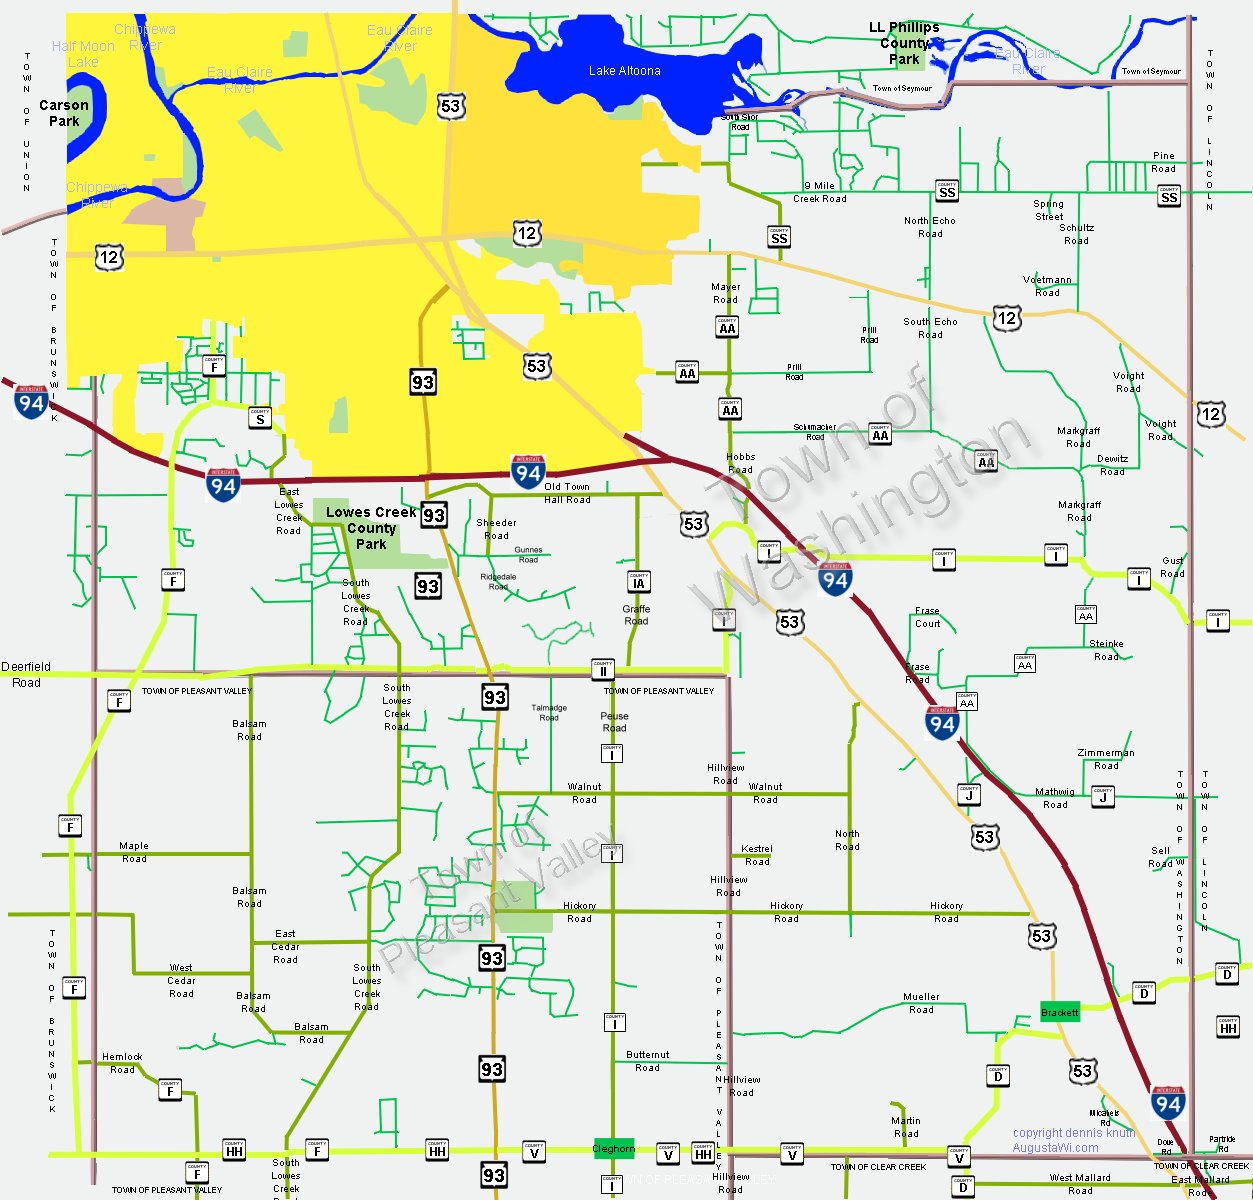 Picture of: Washington Township Map In Eau Claire County